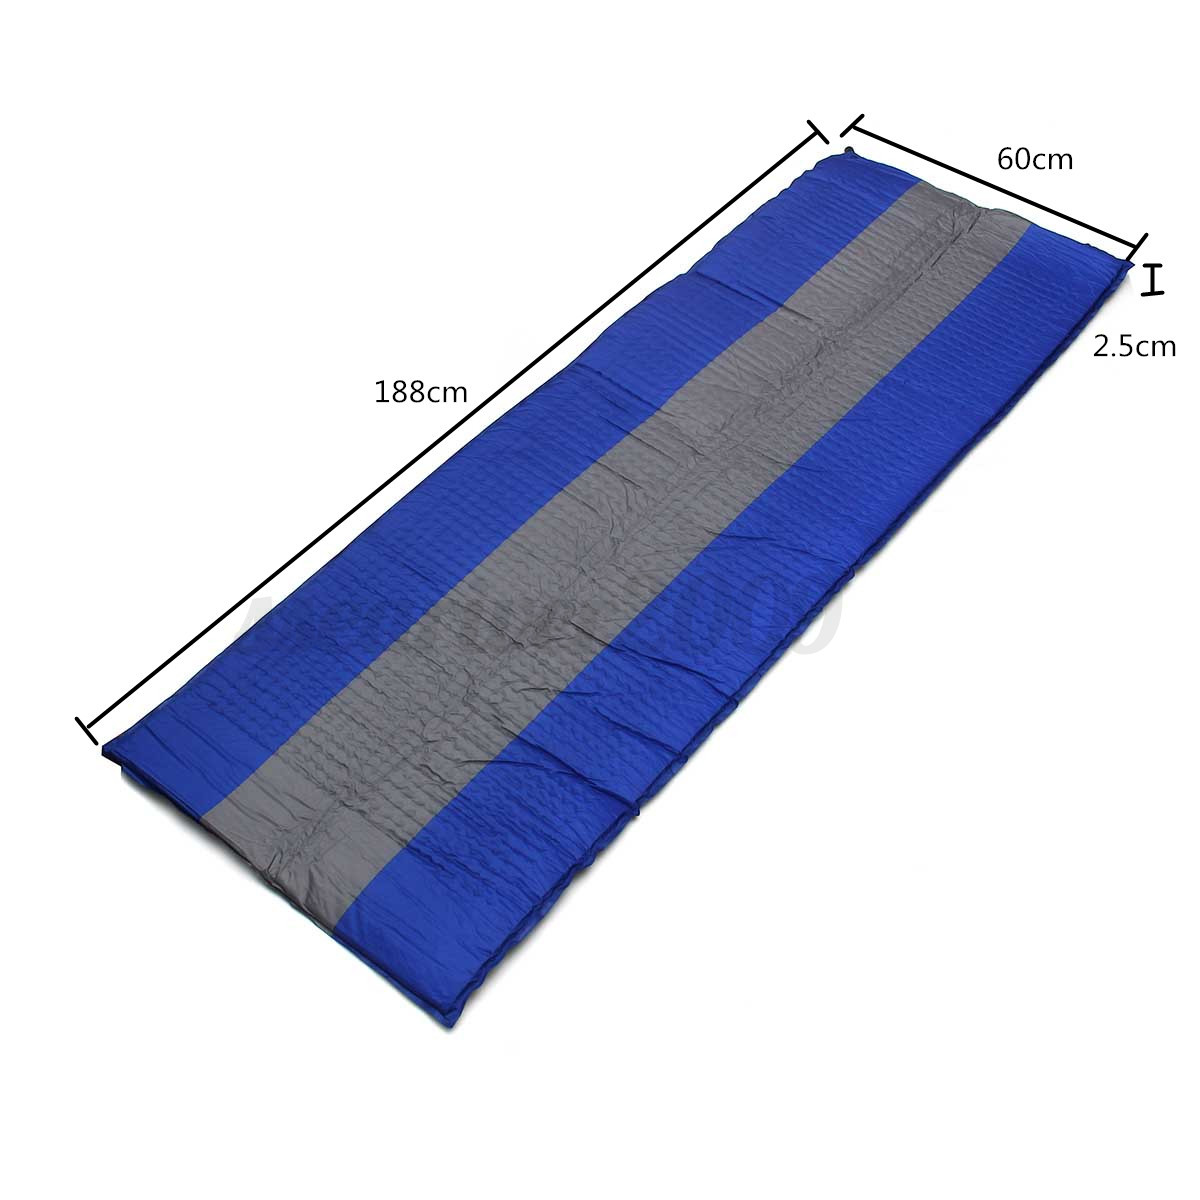 Air bed for camping - Self Inflating Mattress Mat Pad Tent Air Bed